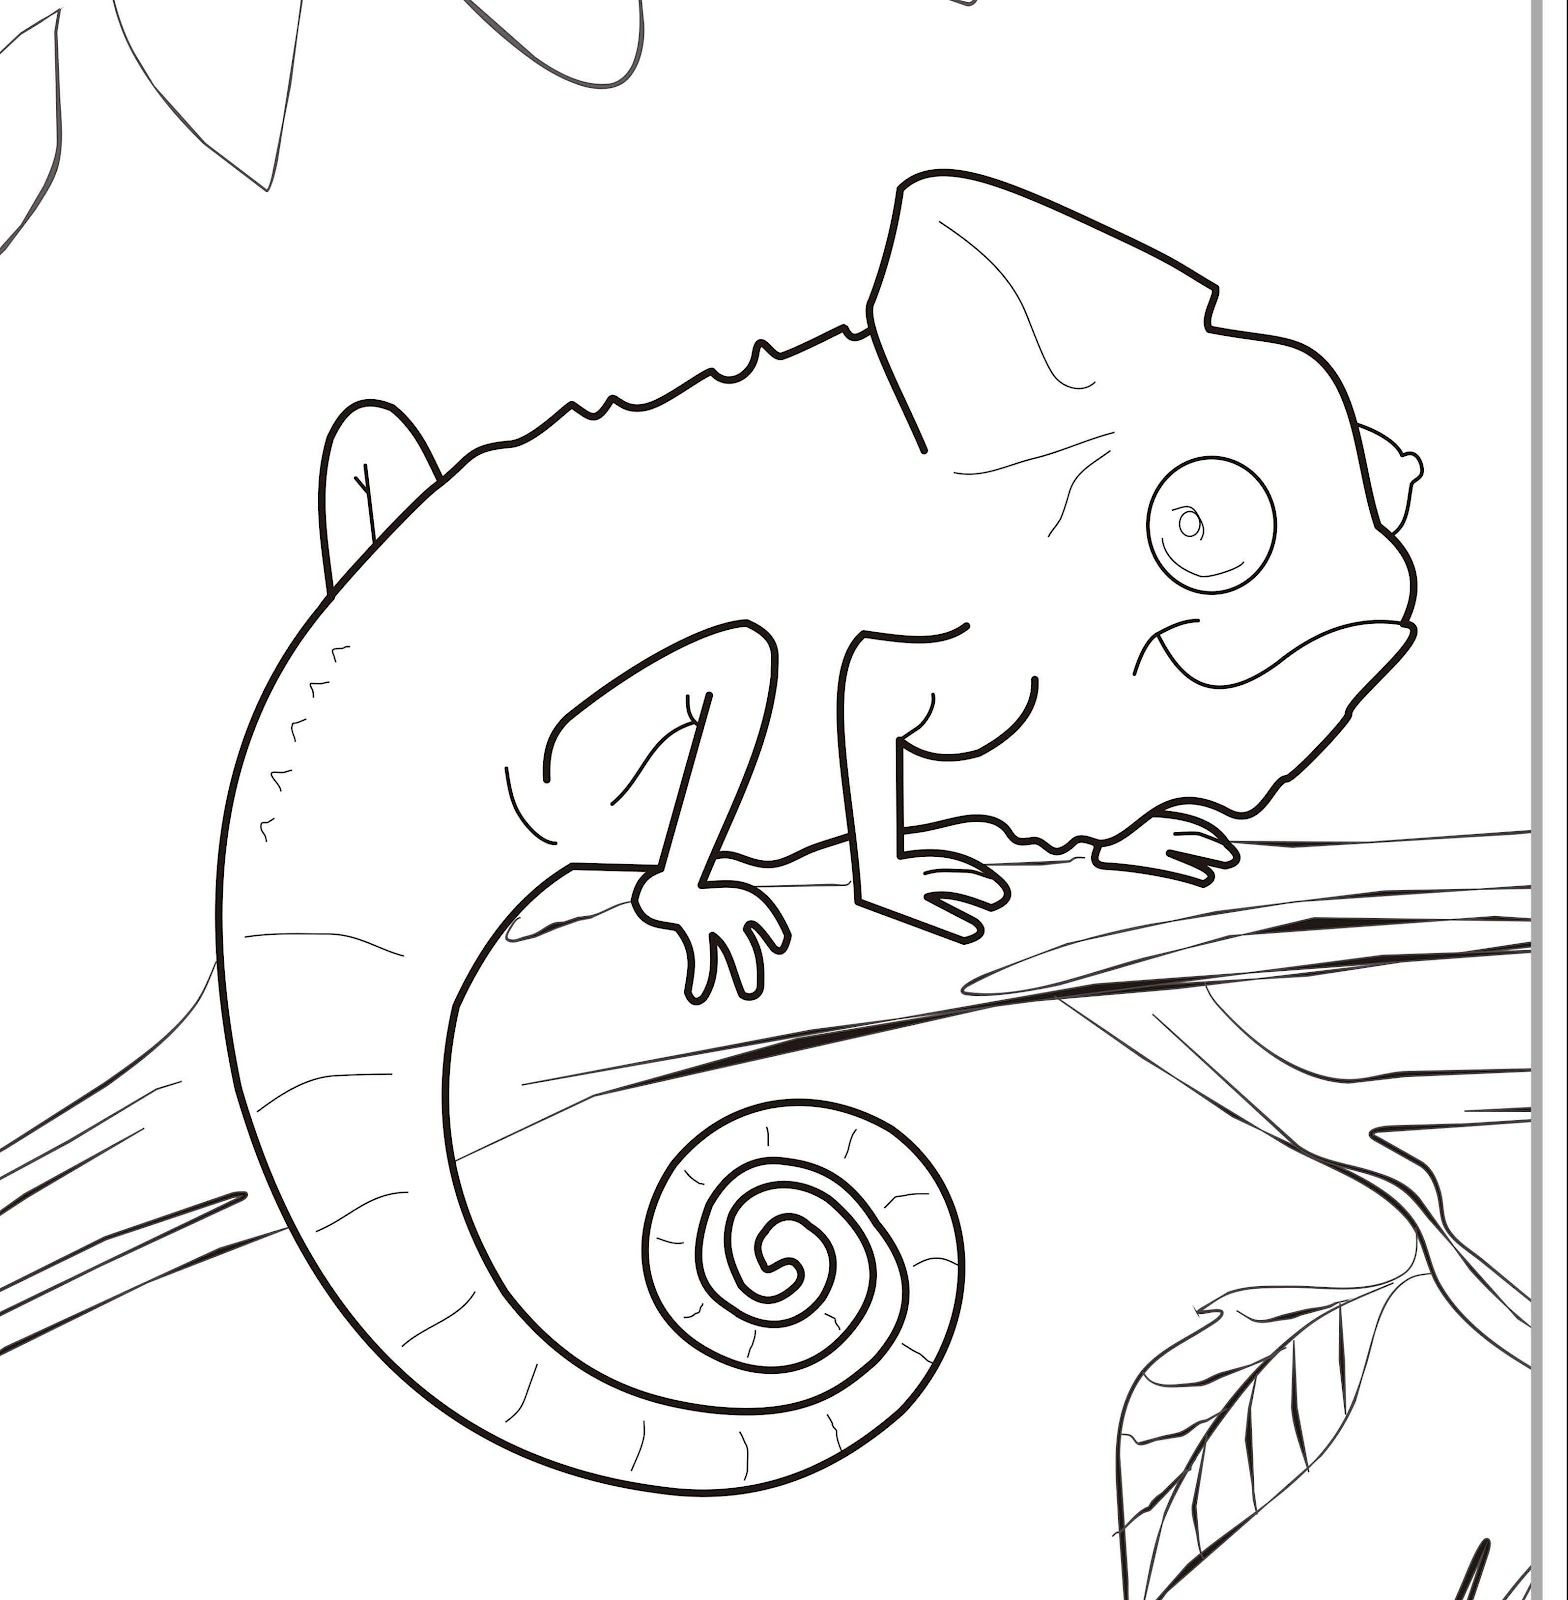 Download Or Print This Amazing Coloring Page Chameleon Coloring